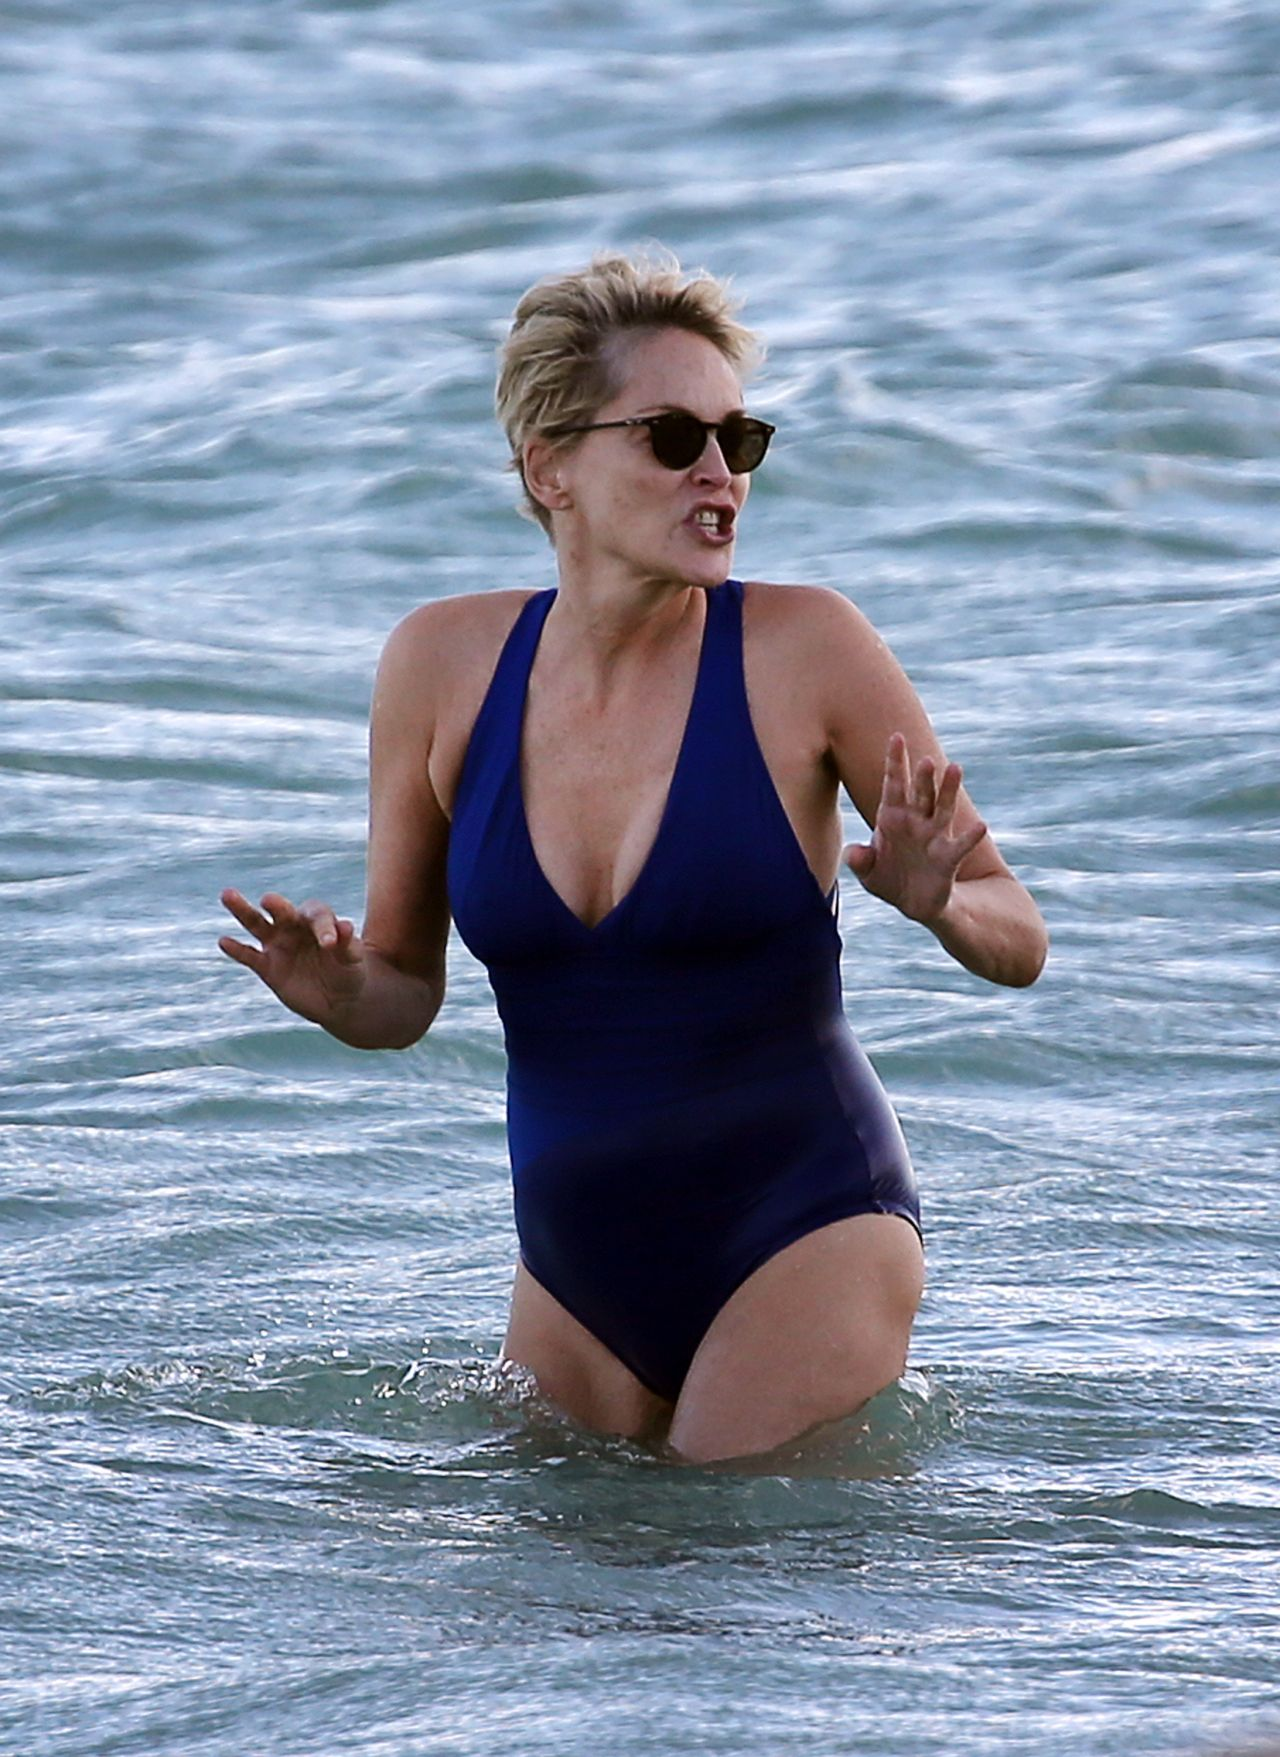 Sharon Stone in Bikini Top with her boyfriend at the beach in Miami Pic 21 of 35